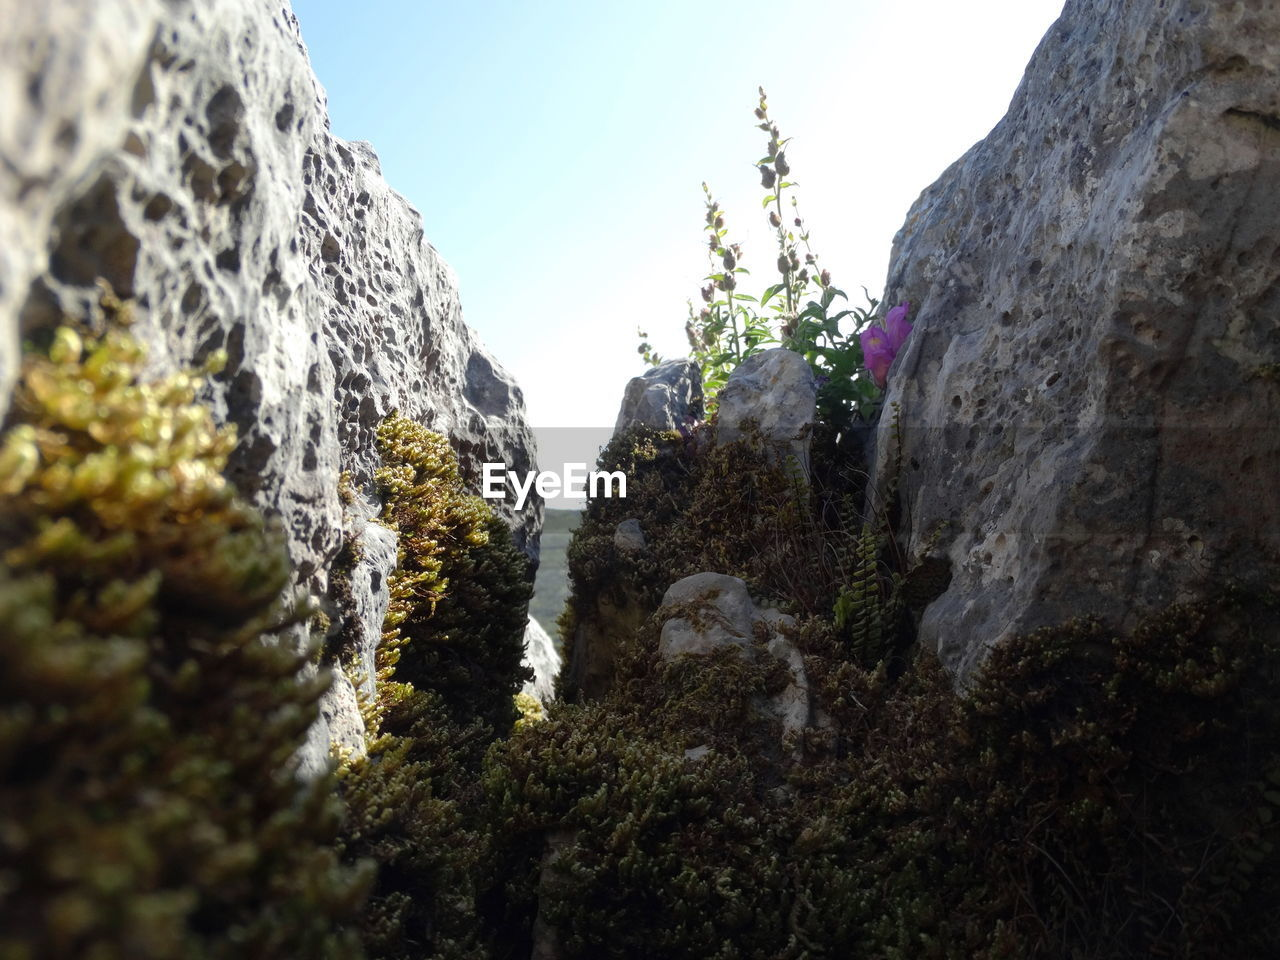 nature, rock - object, beauty in nature, low angle view, rock formation, mountain, day, outdoors, tranquility, scenics, no people, tranquil scene, tree, sky, physical geography, cliff, plant, growth, clear sky, close-up, freshness